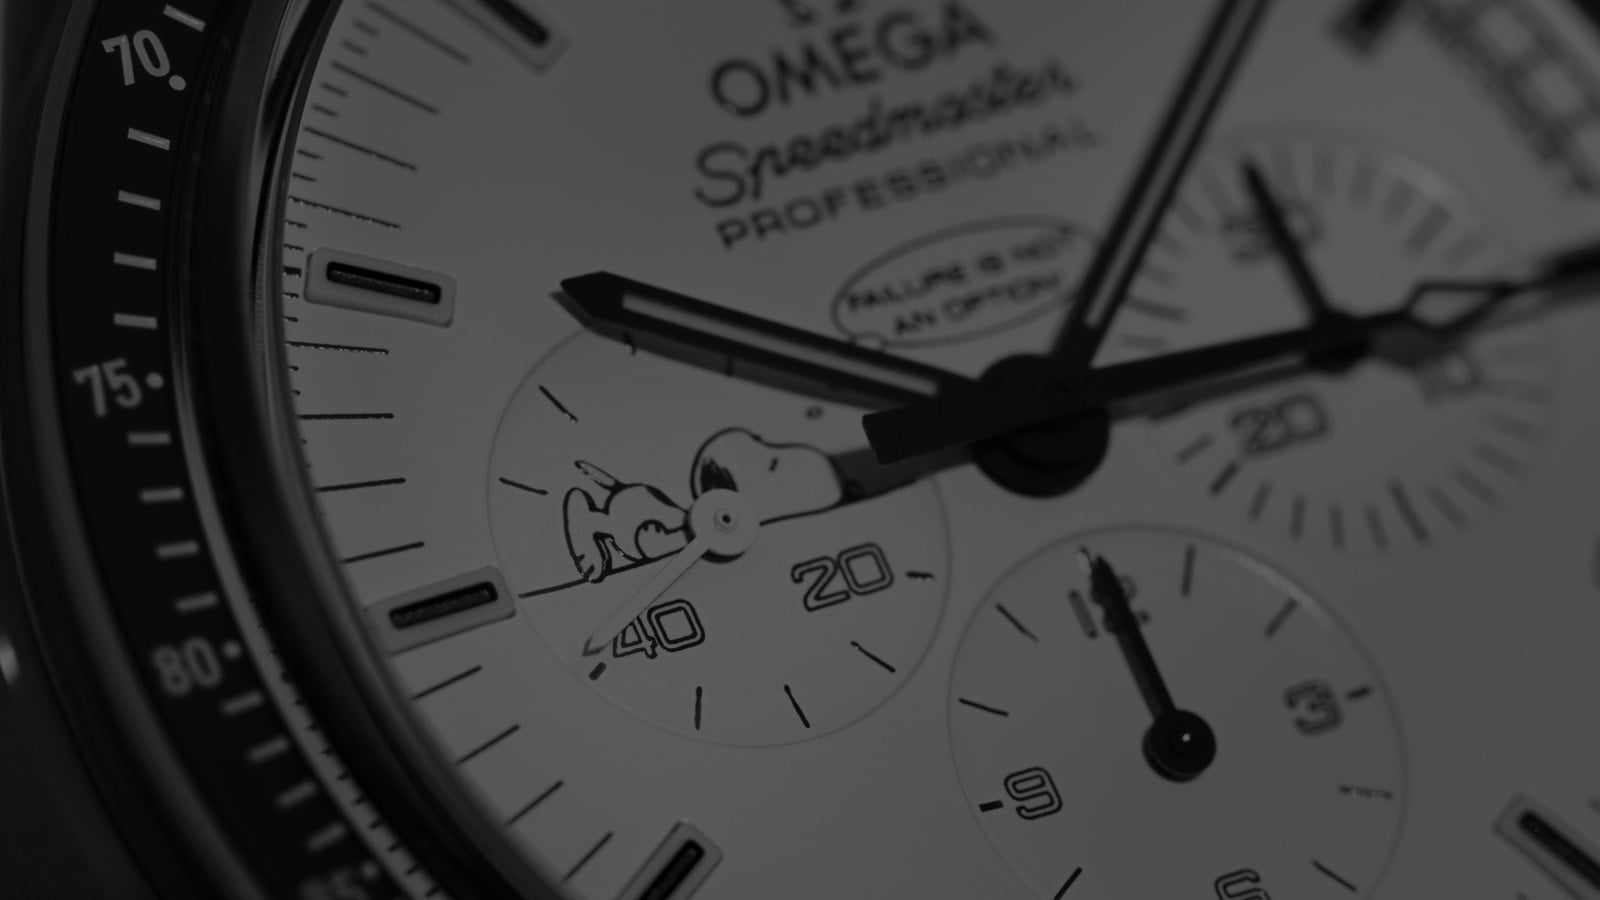 Speedmaster Moonwatch Apollo 13 Silver Snoopy Award - Video - 20891